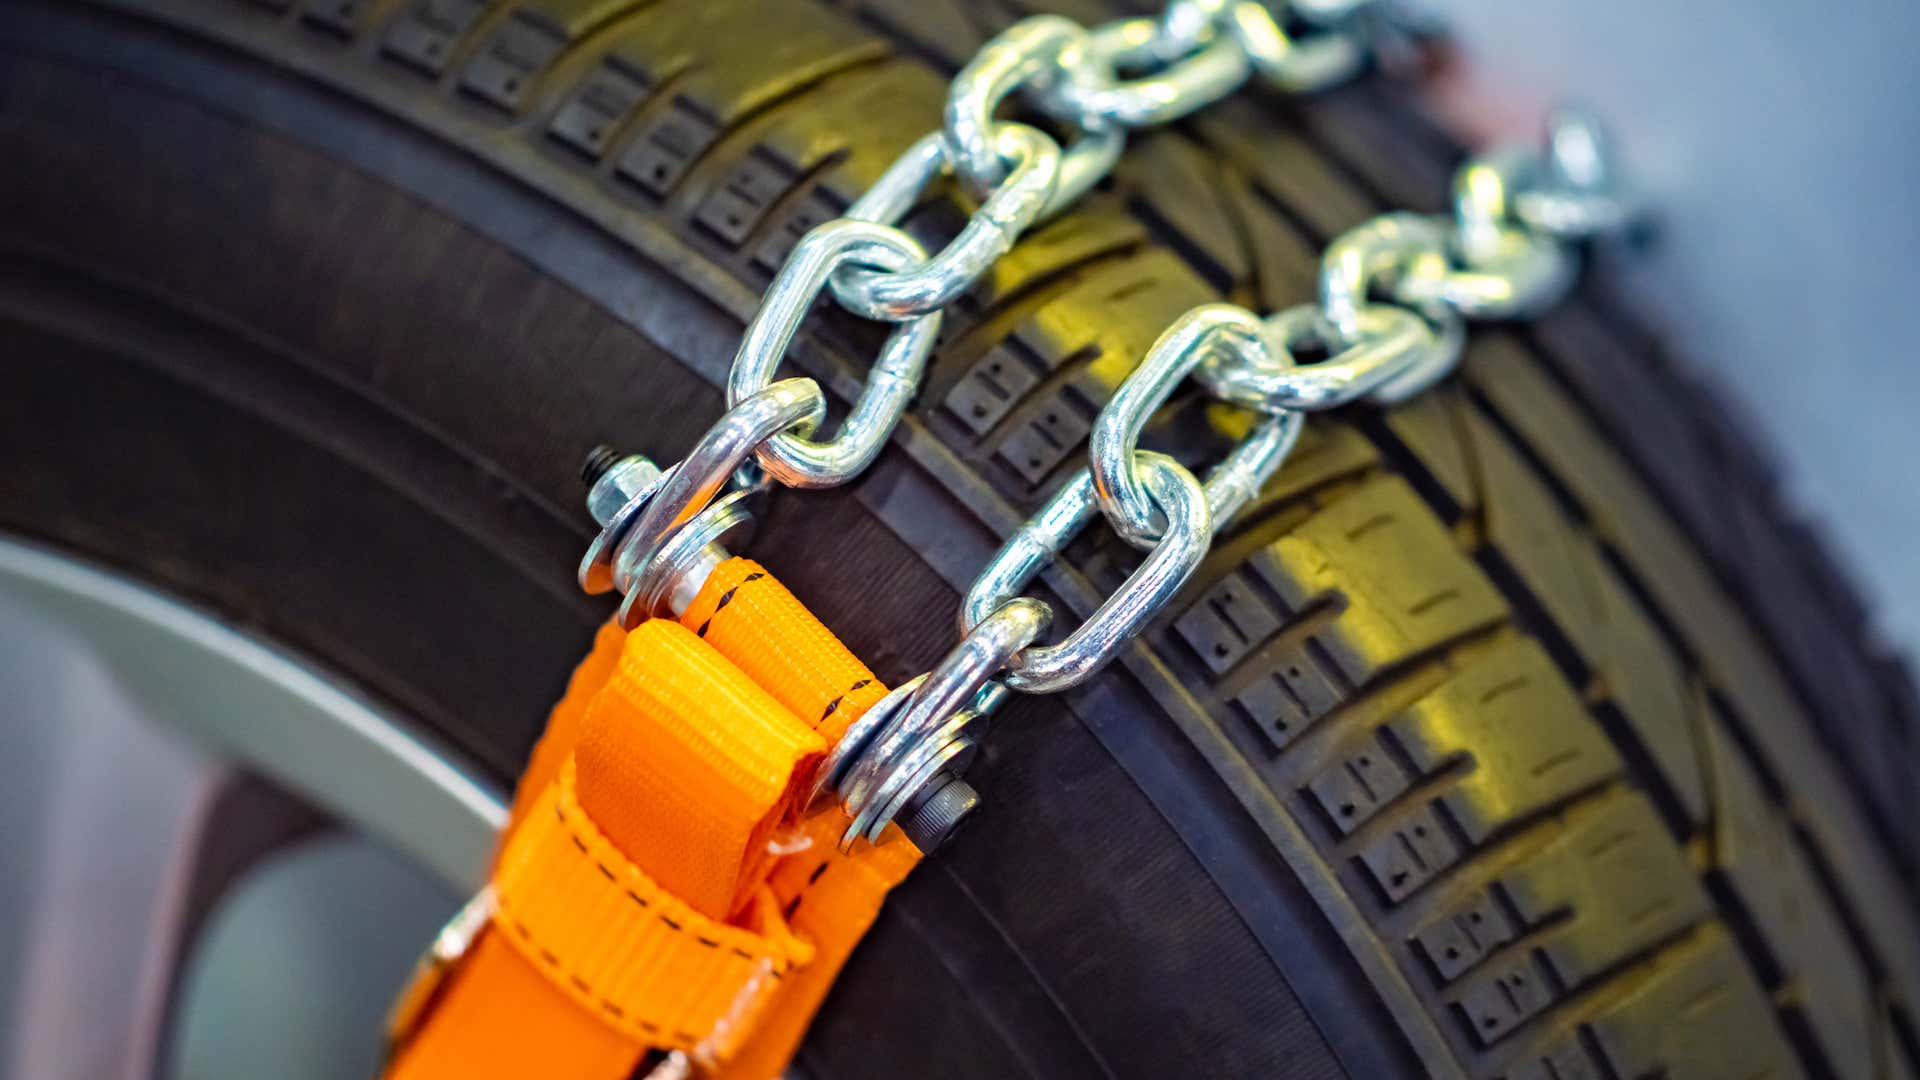 Tire chains come in many sizes and types.